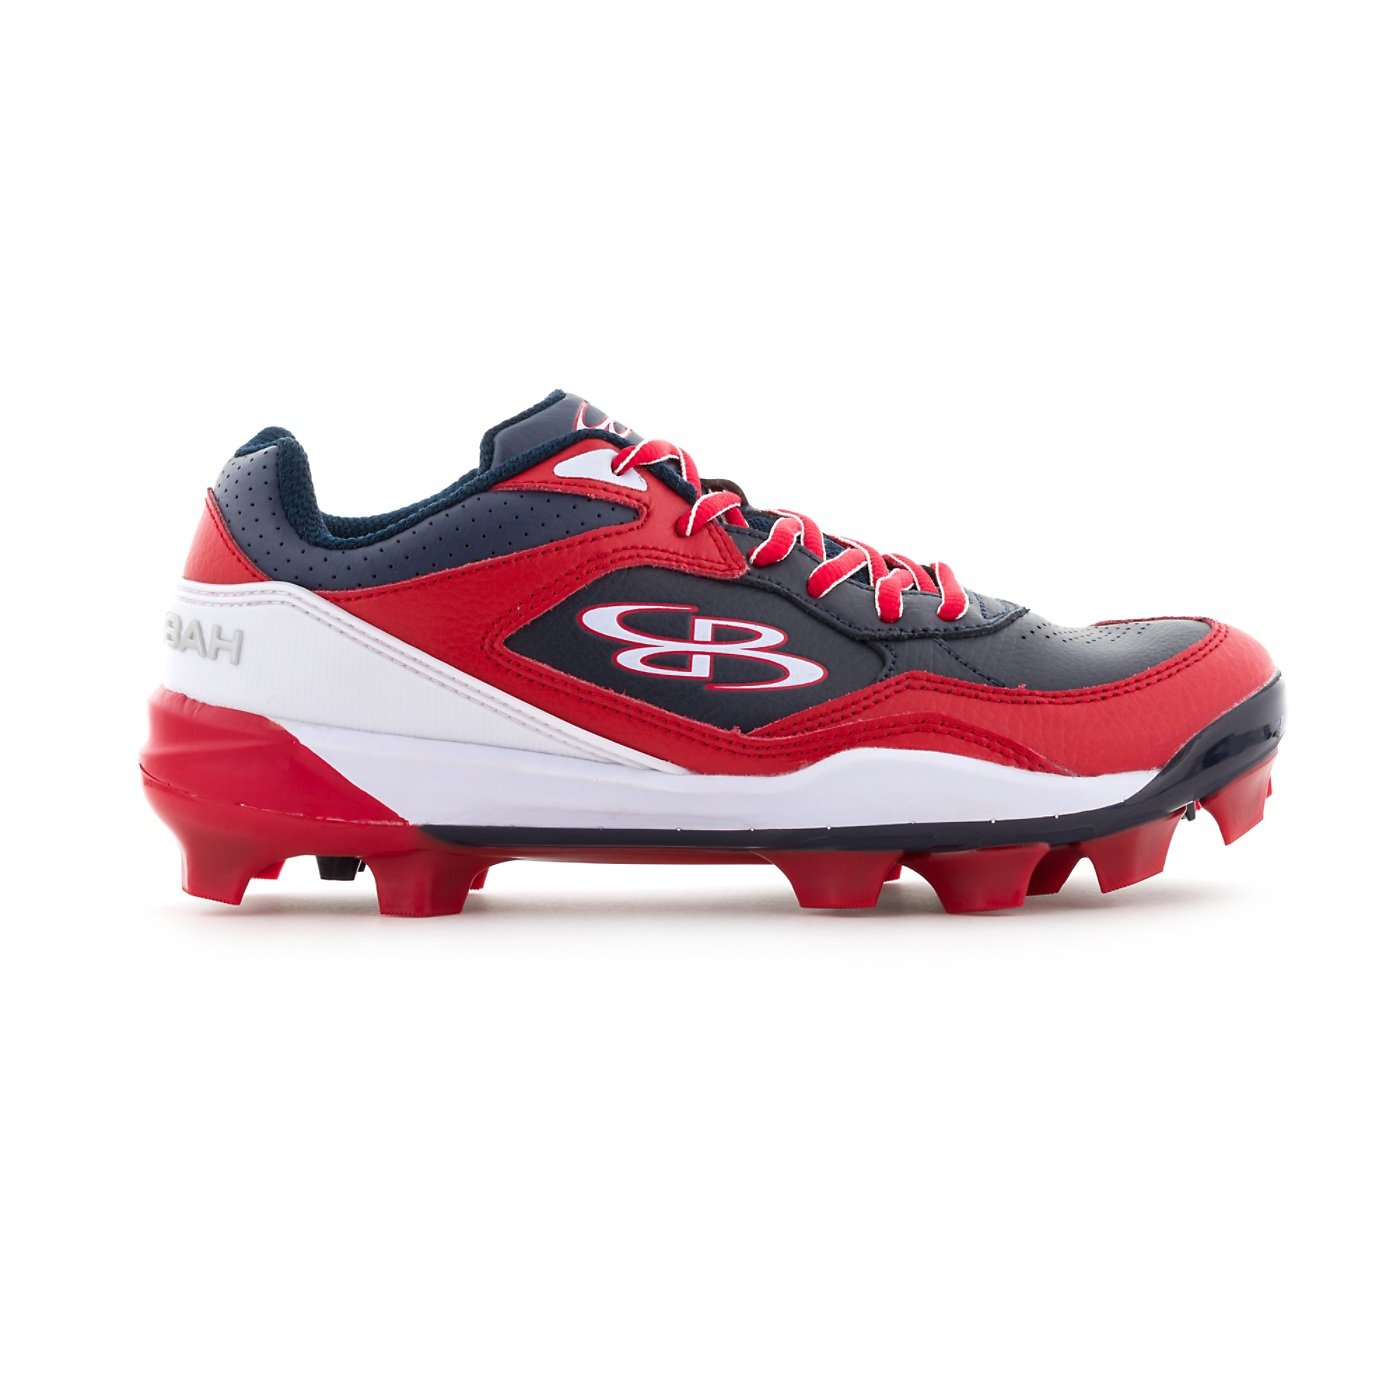 Boombah Women's Endura Molded Cleats - 18 Color Options - Multiple Sizes